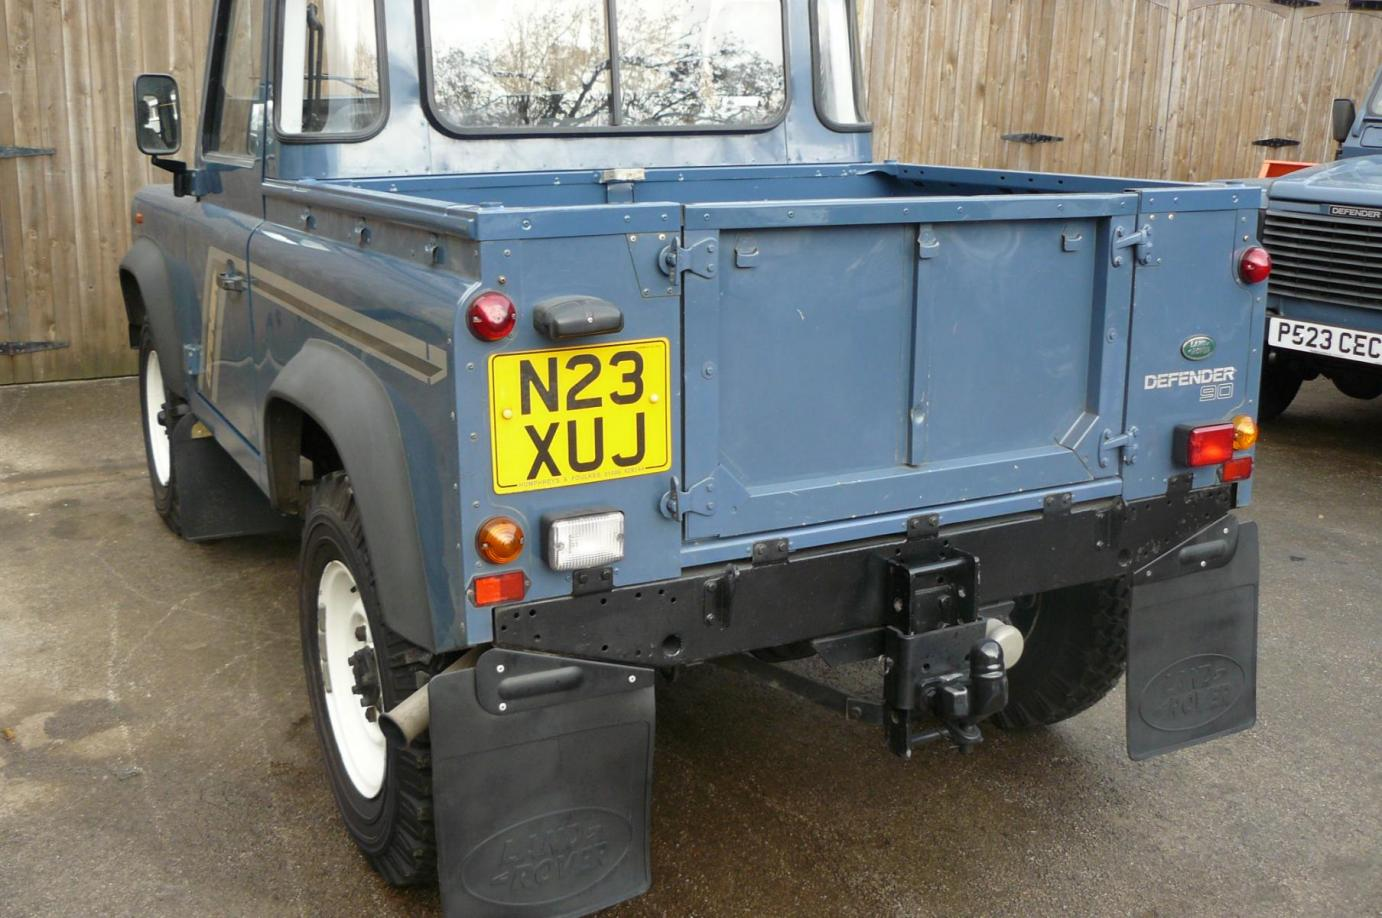 Land Rover Defender 300 Tdi With Low Miles Jake Wright Ltd 90 Pick Up For Sale